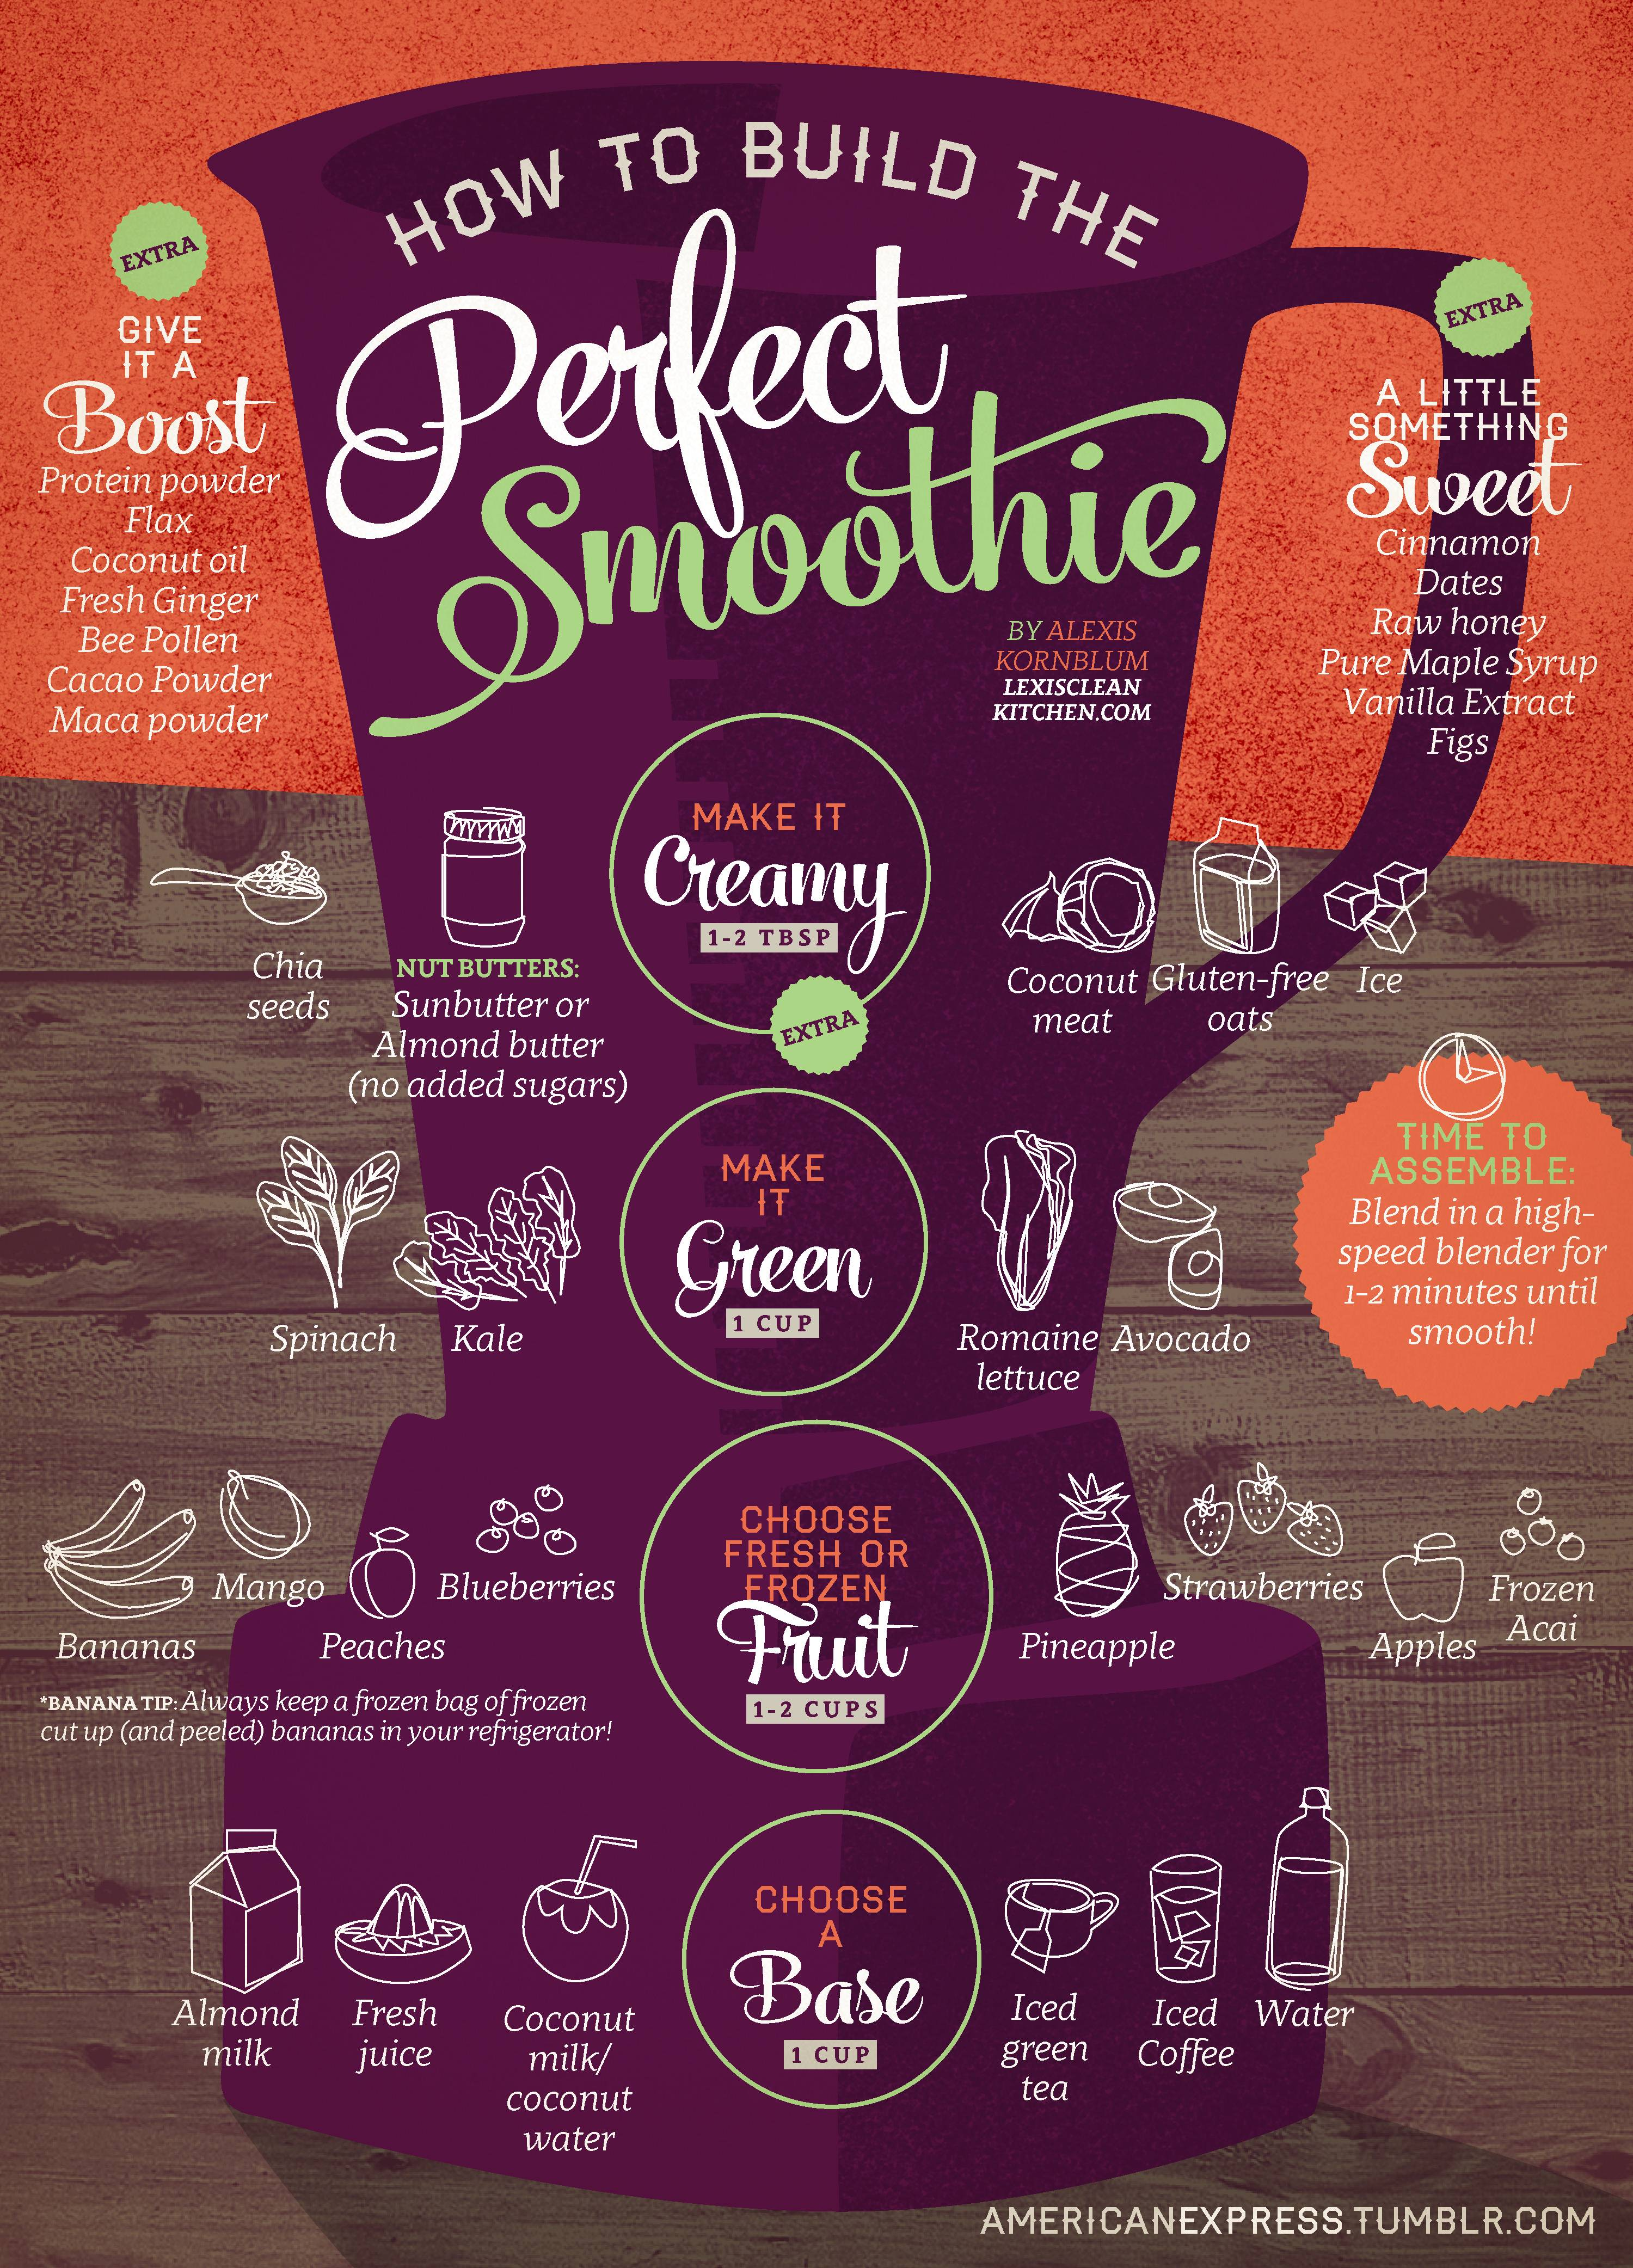 How to Mix the Perfect Smoothie | Diagrams For Easier Healthy Eating